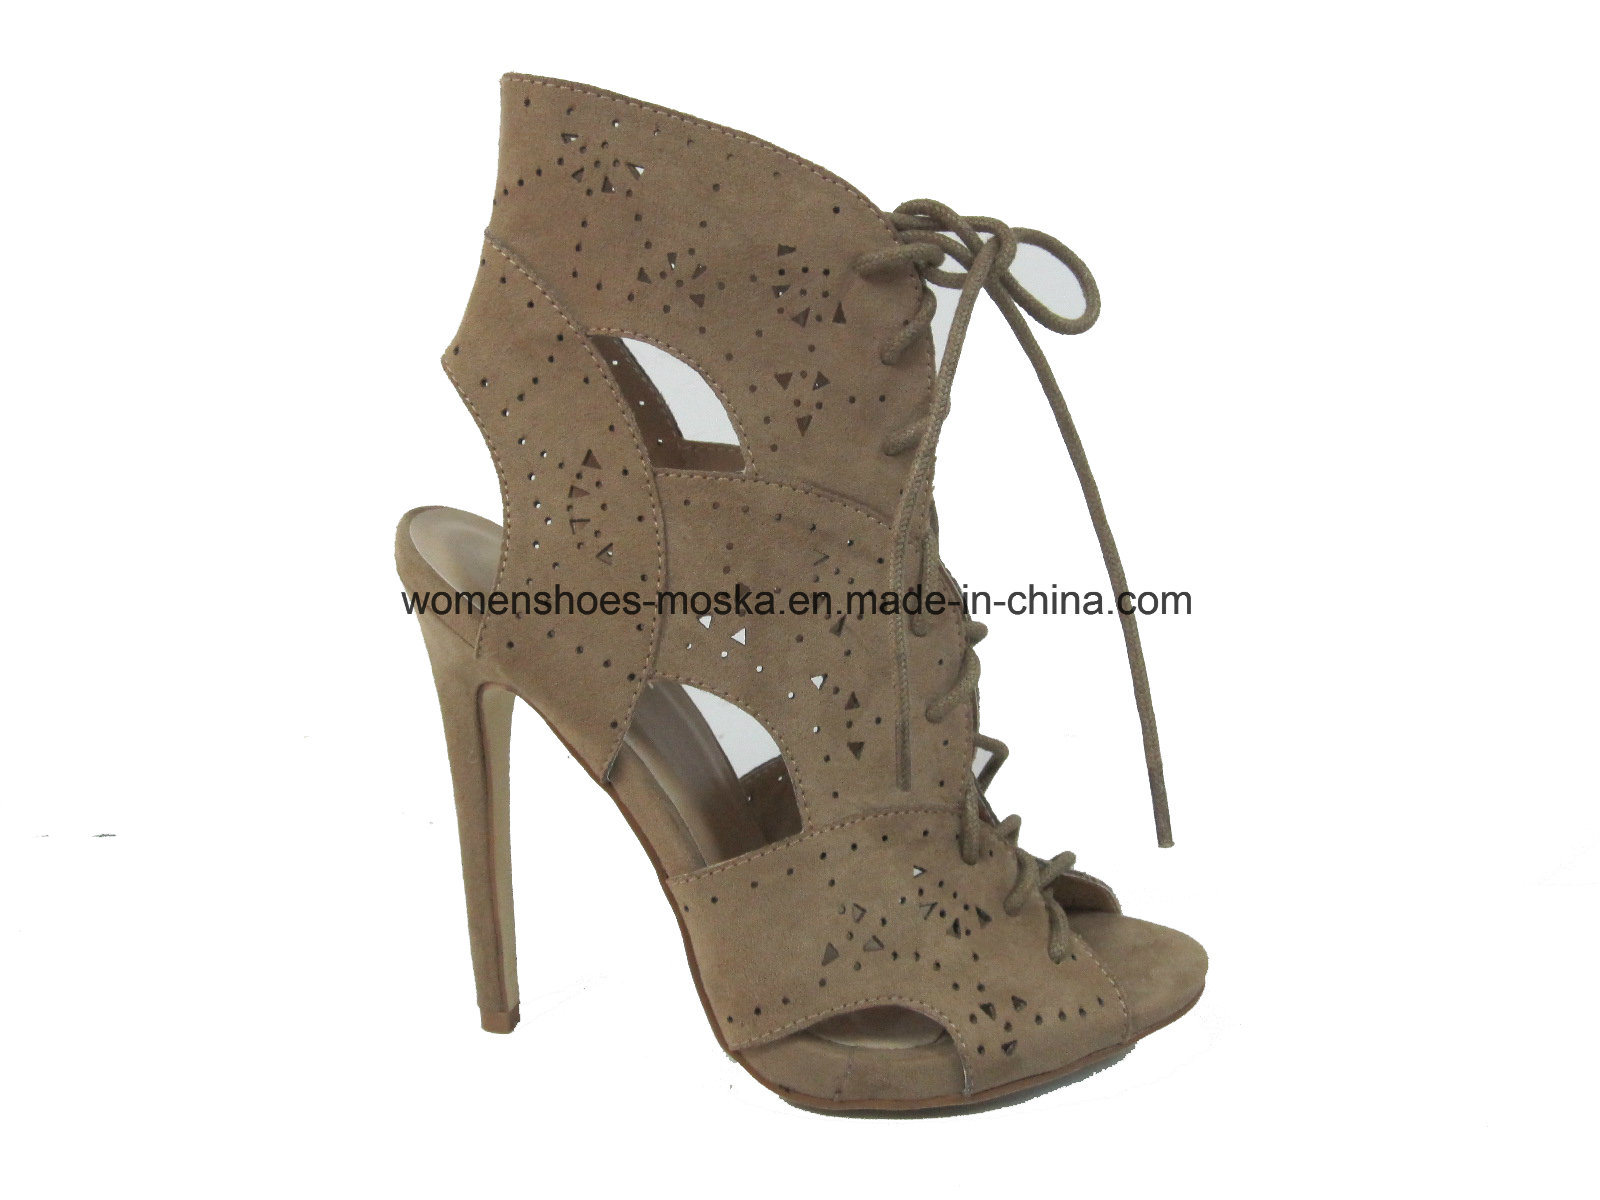 Hot Sale Women High Heel Ankle Sandal Shoes with Peep Toe